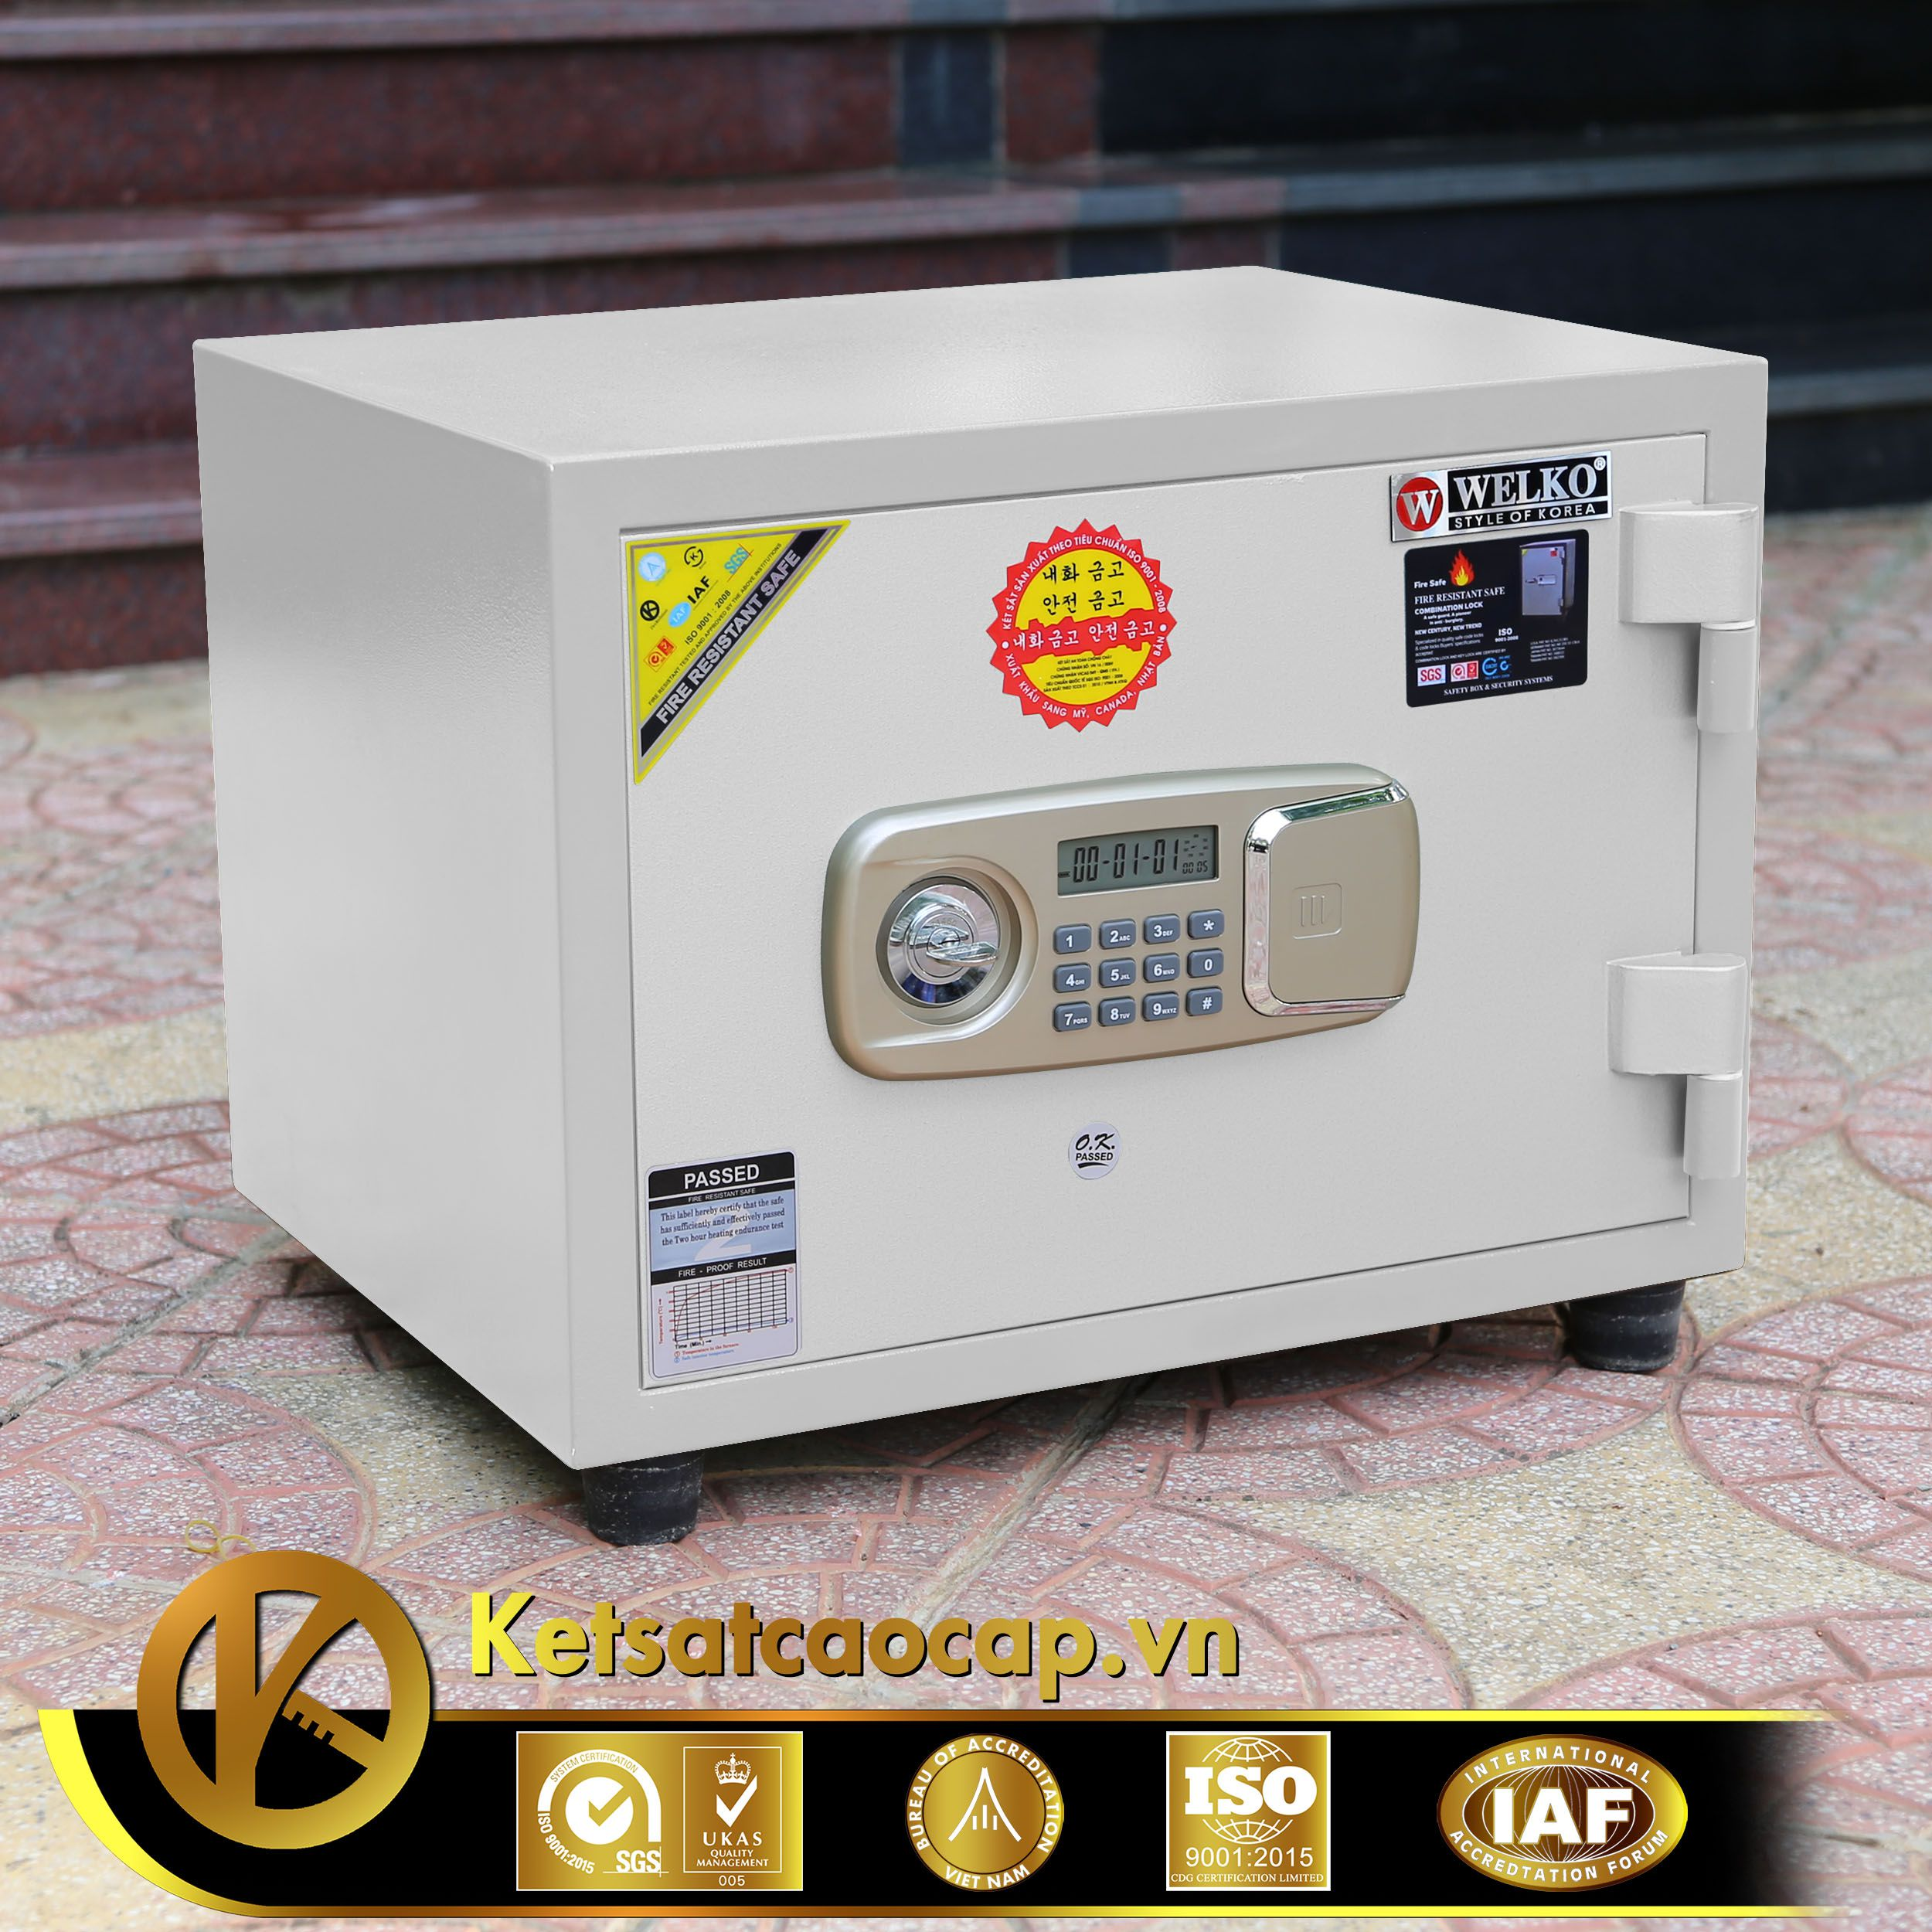 cach doi ma ket sat mini WELKO Fire Resistant Safes